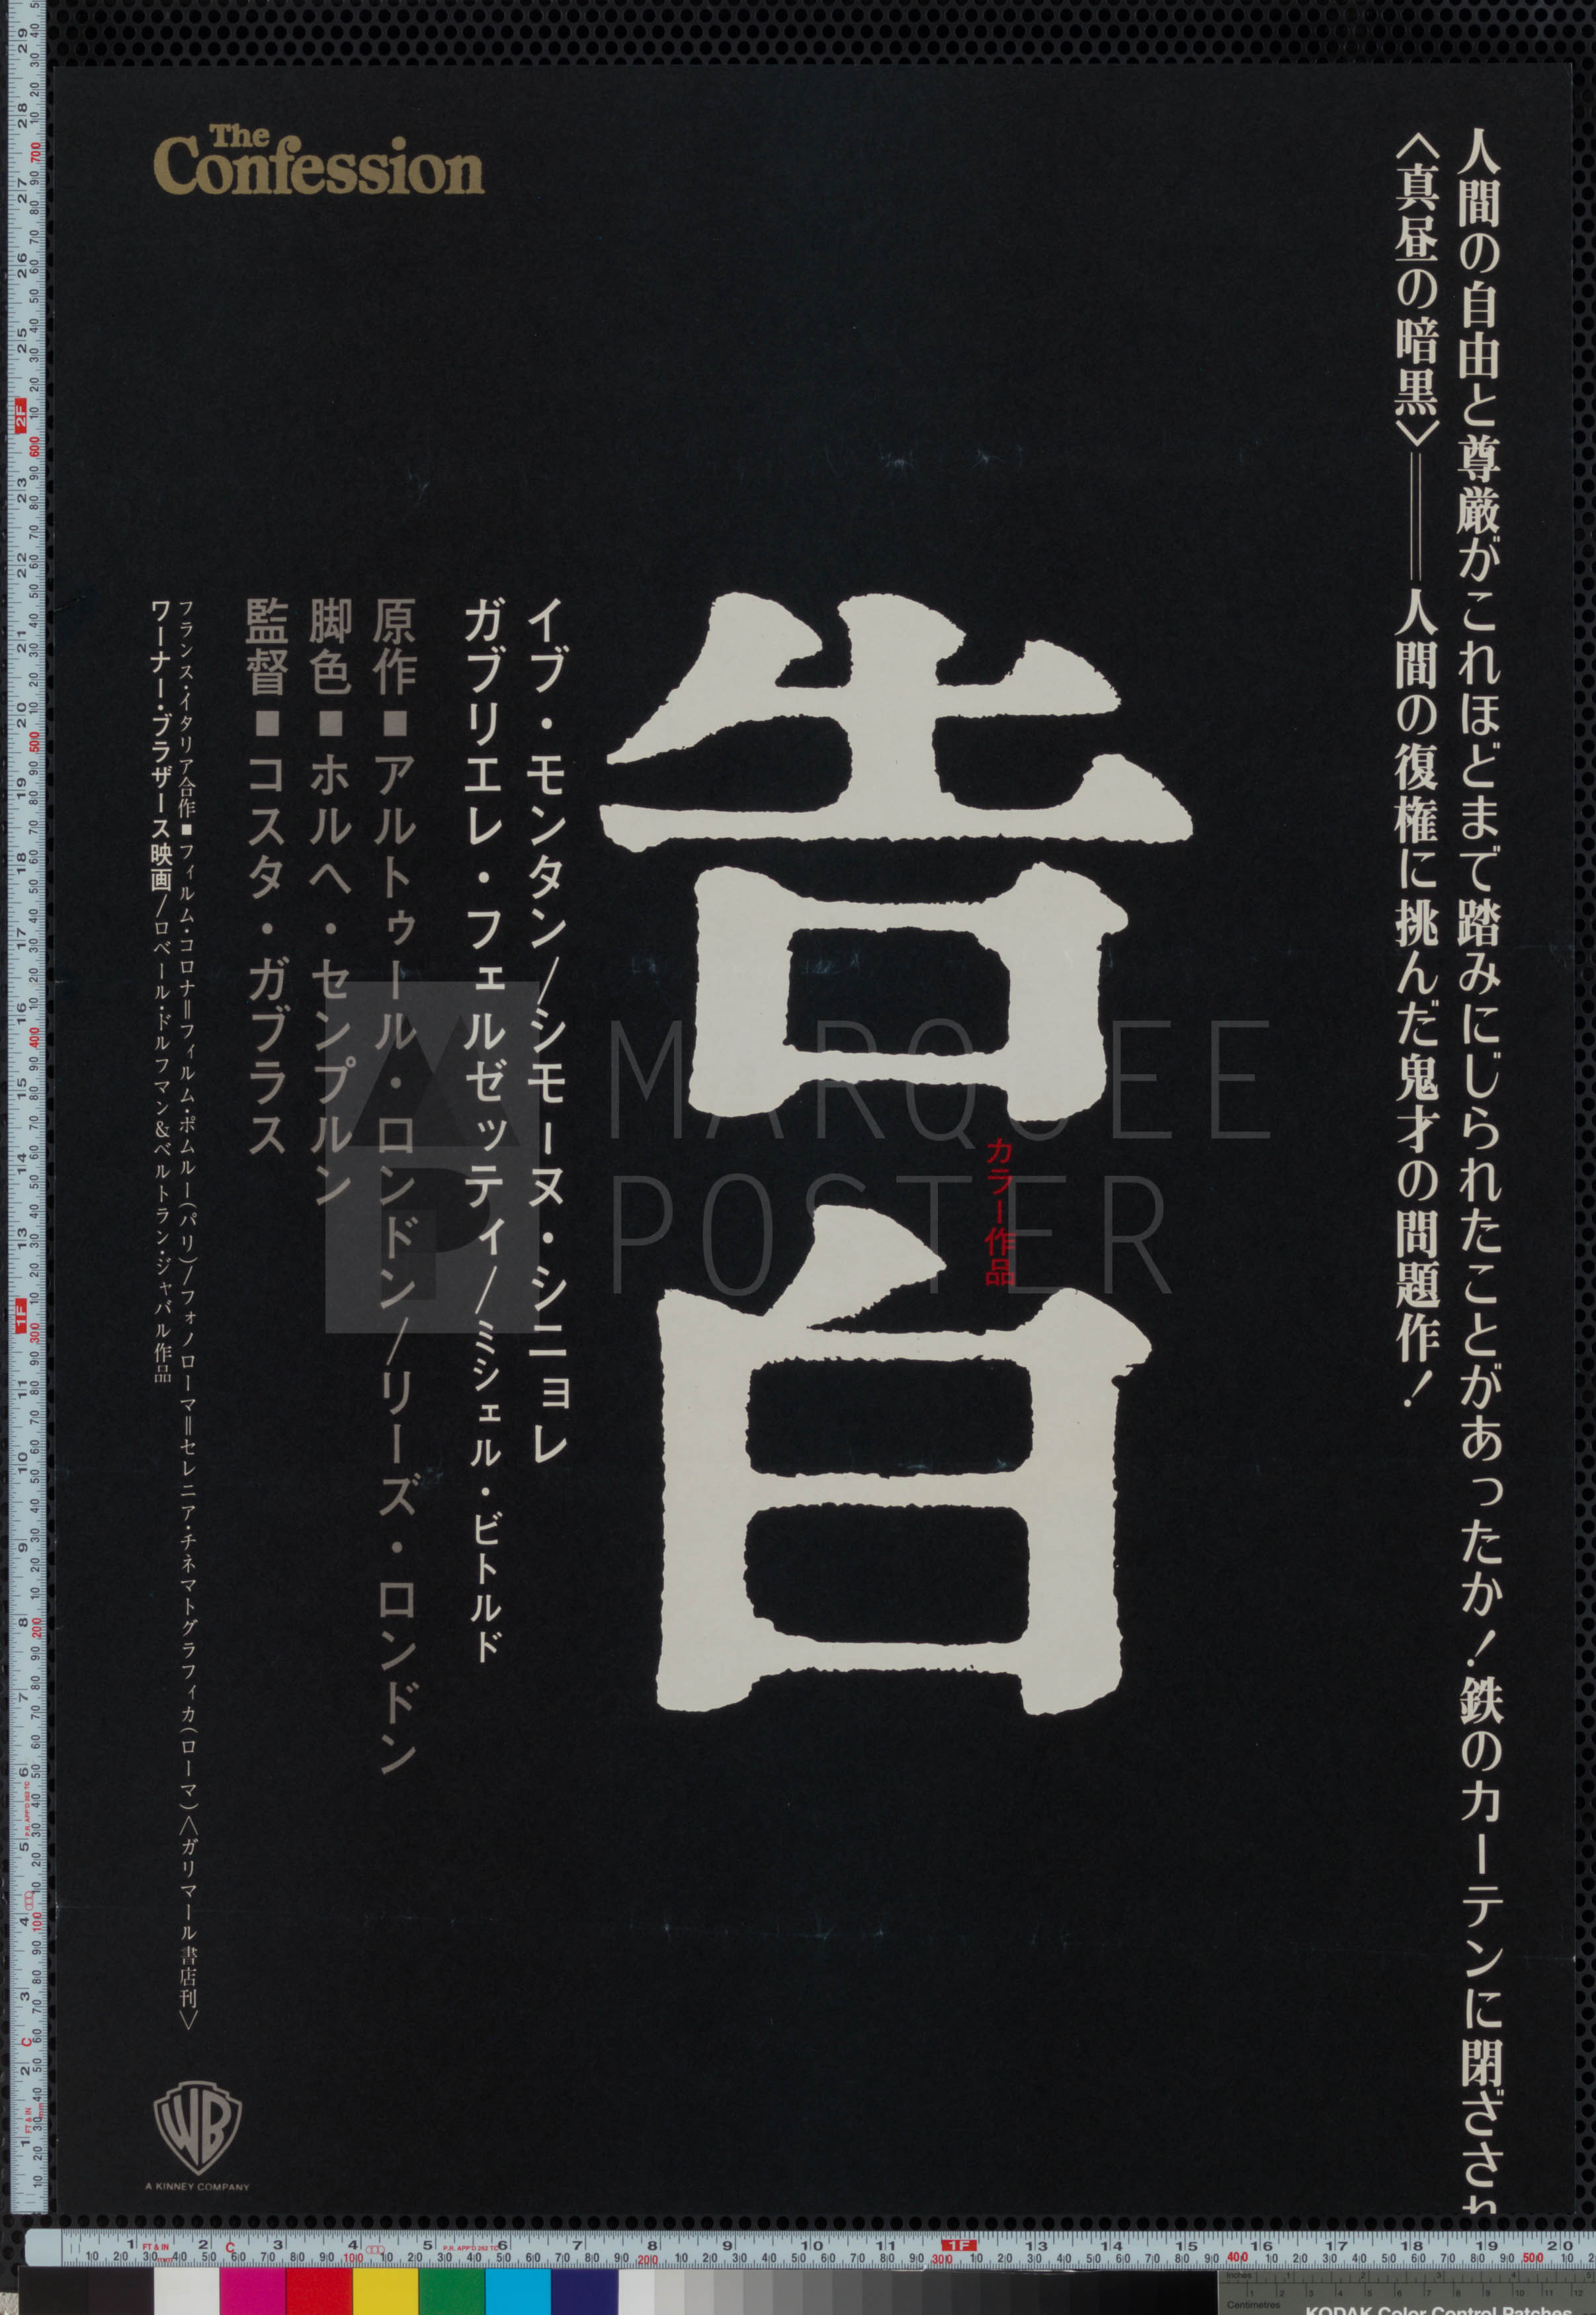 5-confession-japanese-stb-1971-02